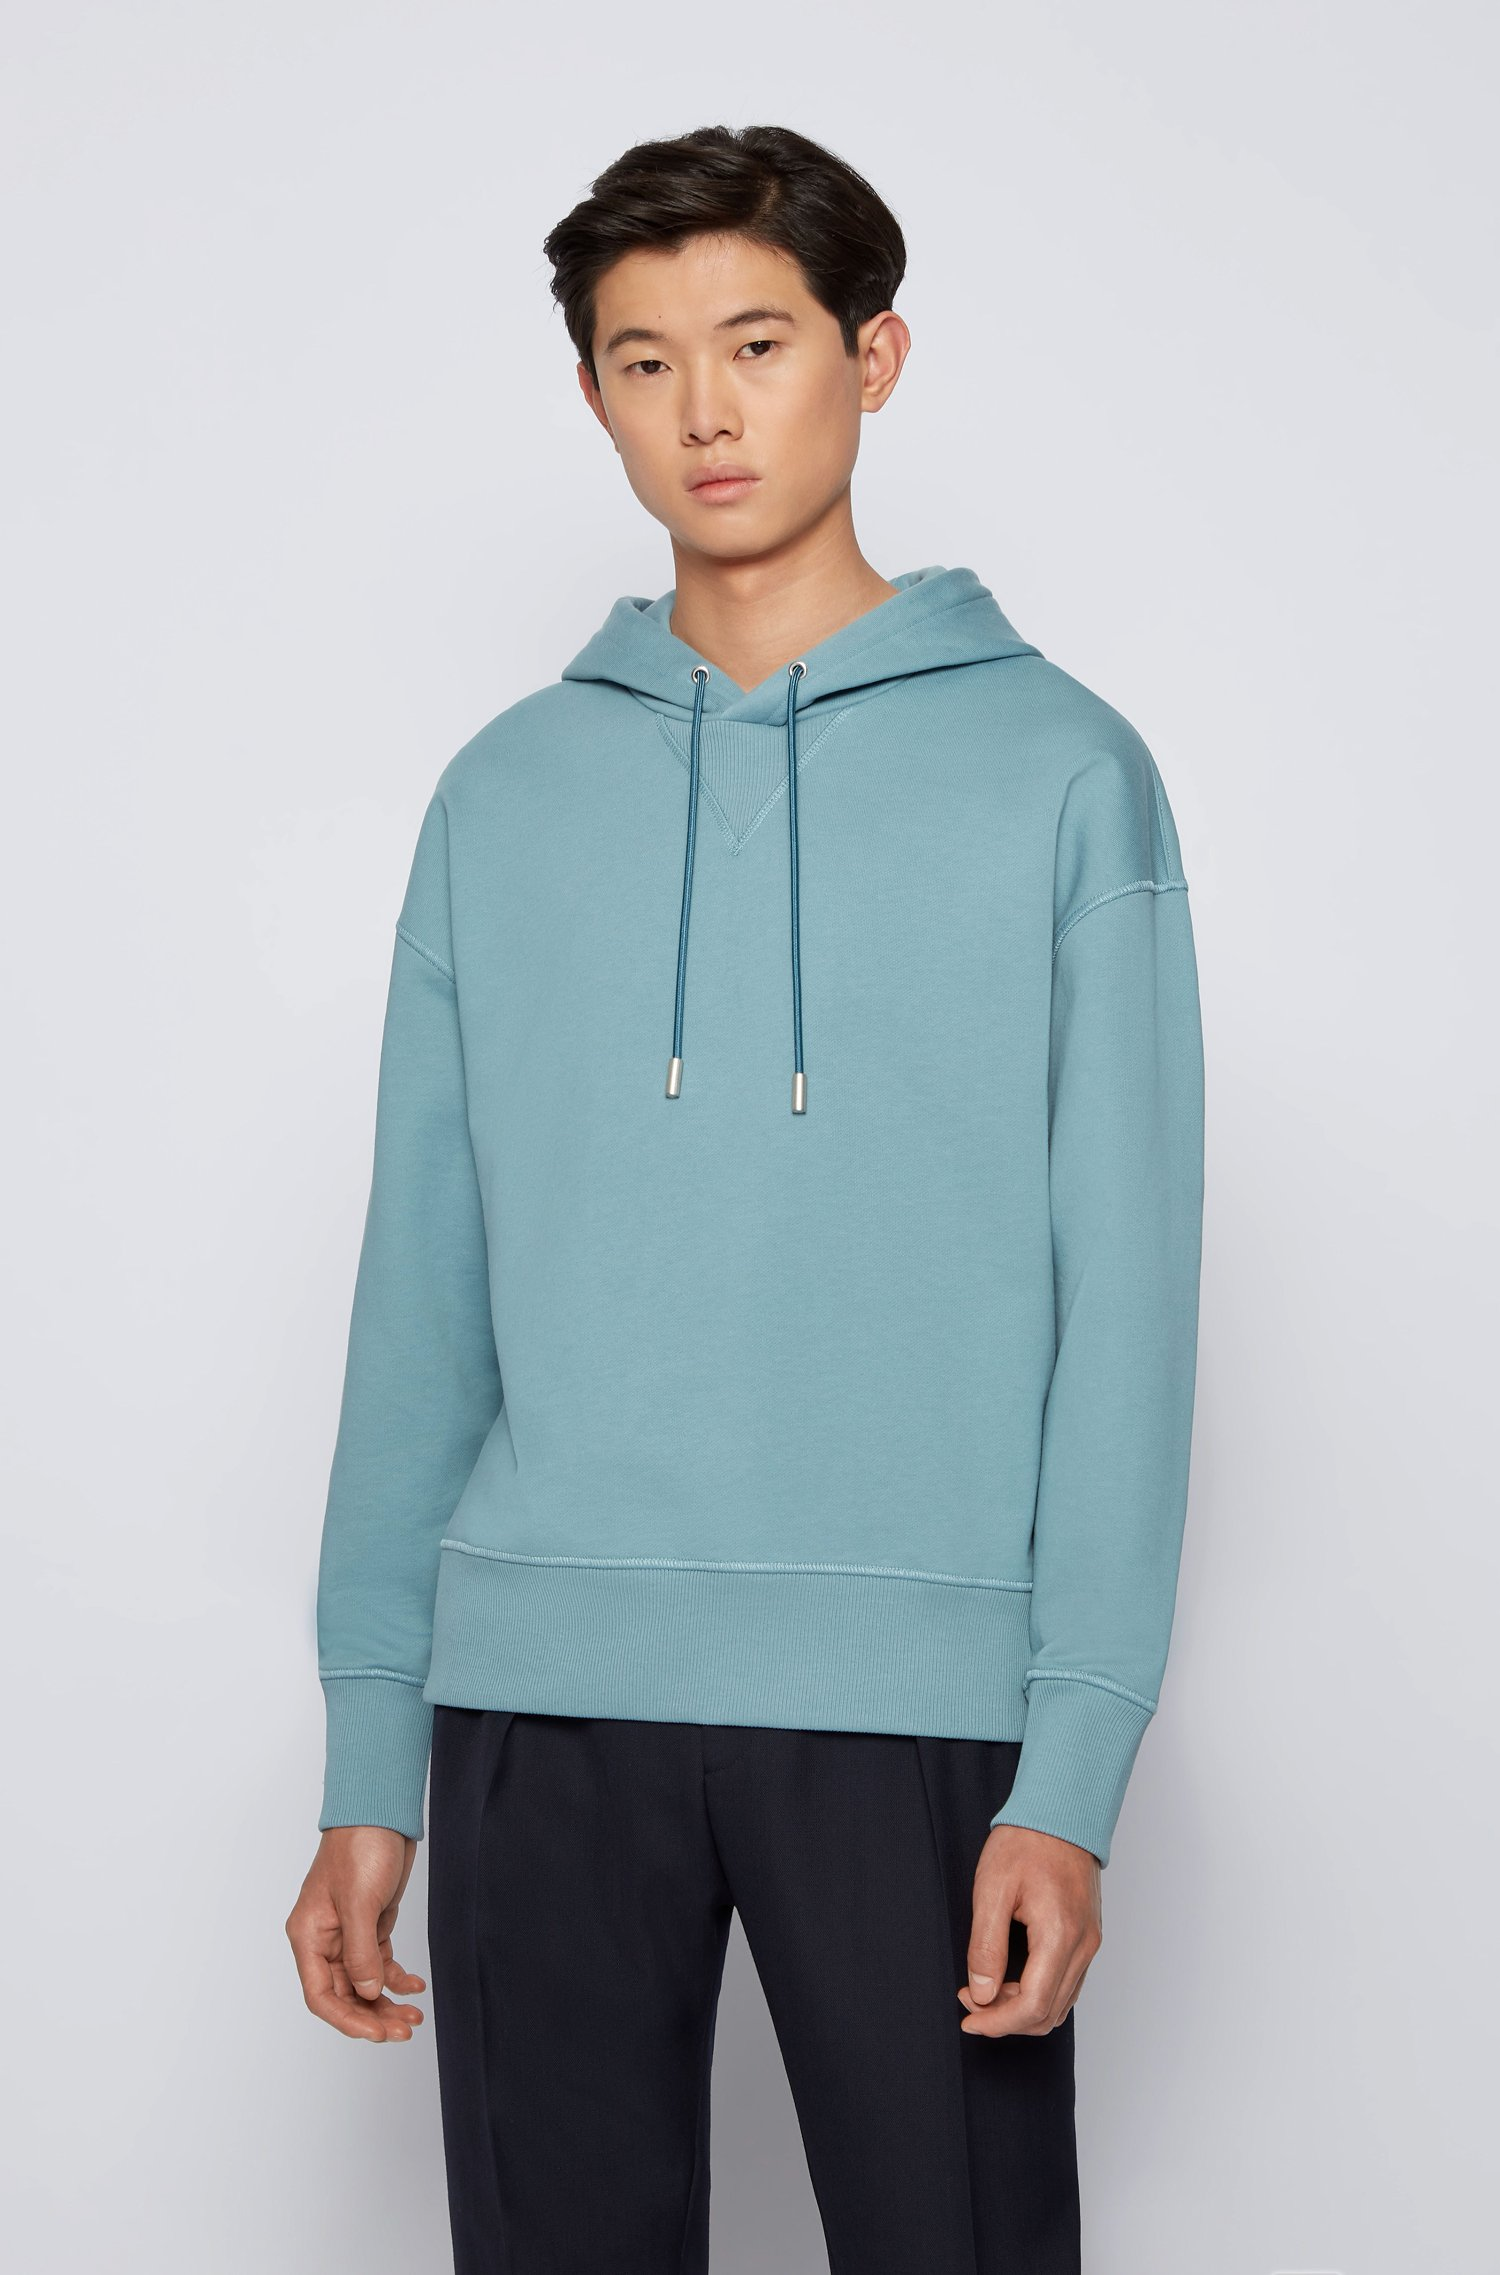 Hooded sweatshirt in French terry cotton with liquid finishing, Light Blue